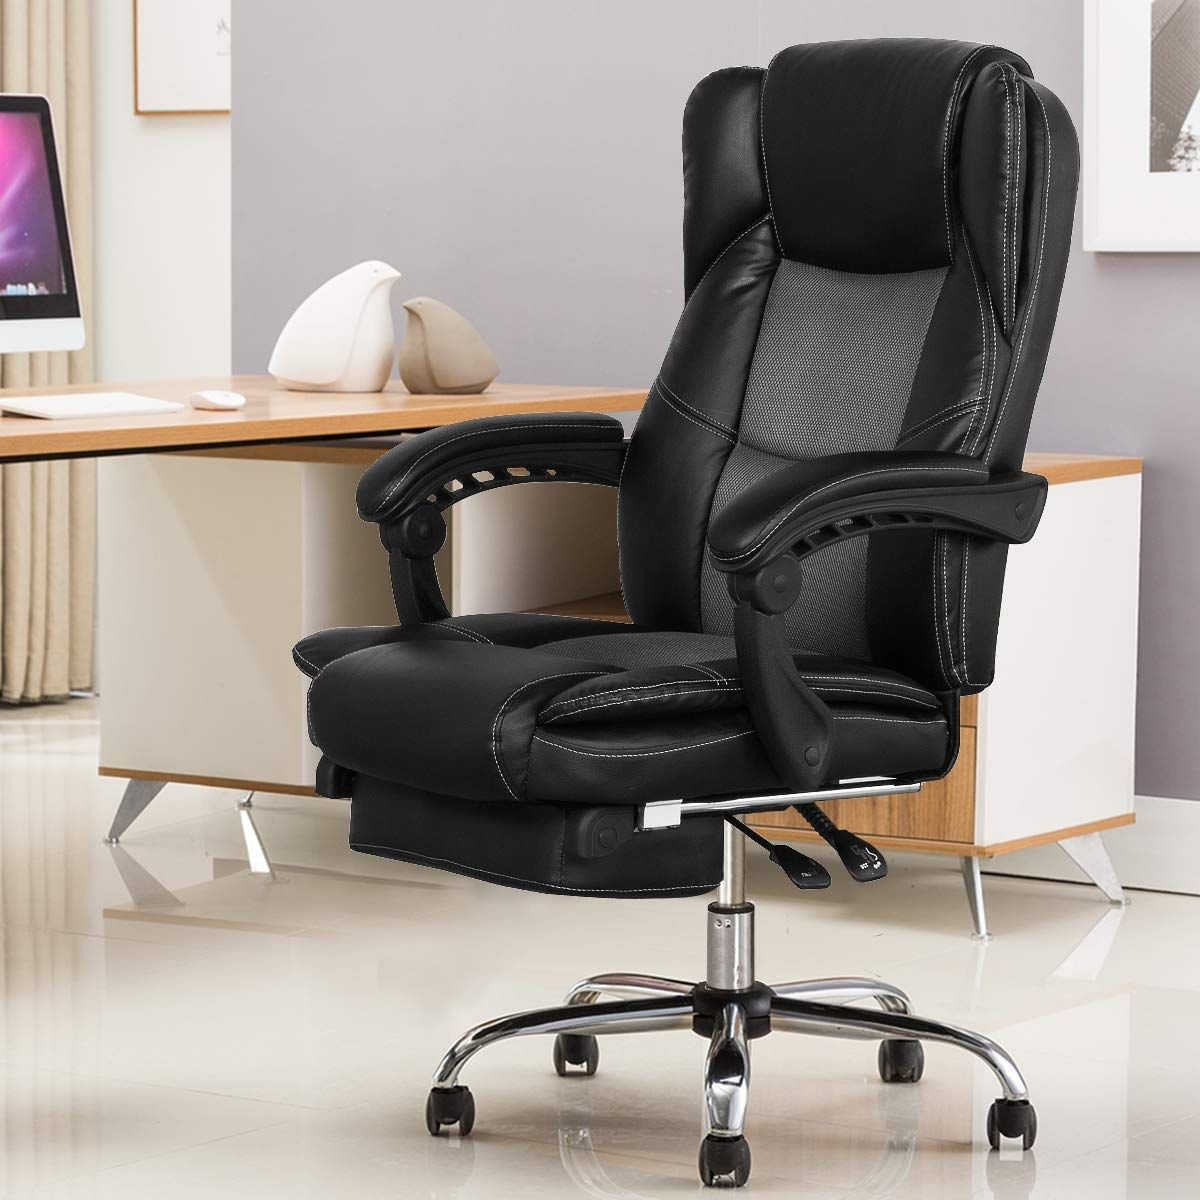 B2c2b Ergonomic Reclining Office Chair High Back Napping Desk Chair Computer Chair Leather Chai Luxury Office Chairs Reclining Office Chair Office Chair Design